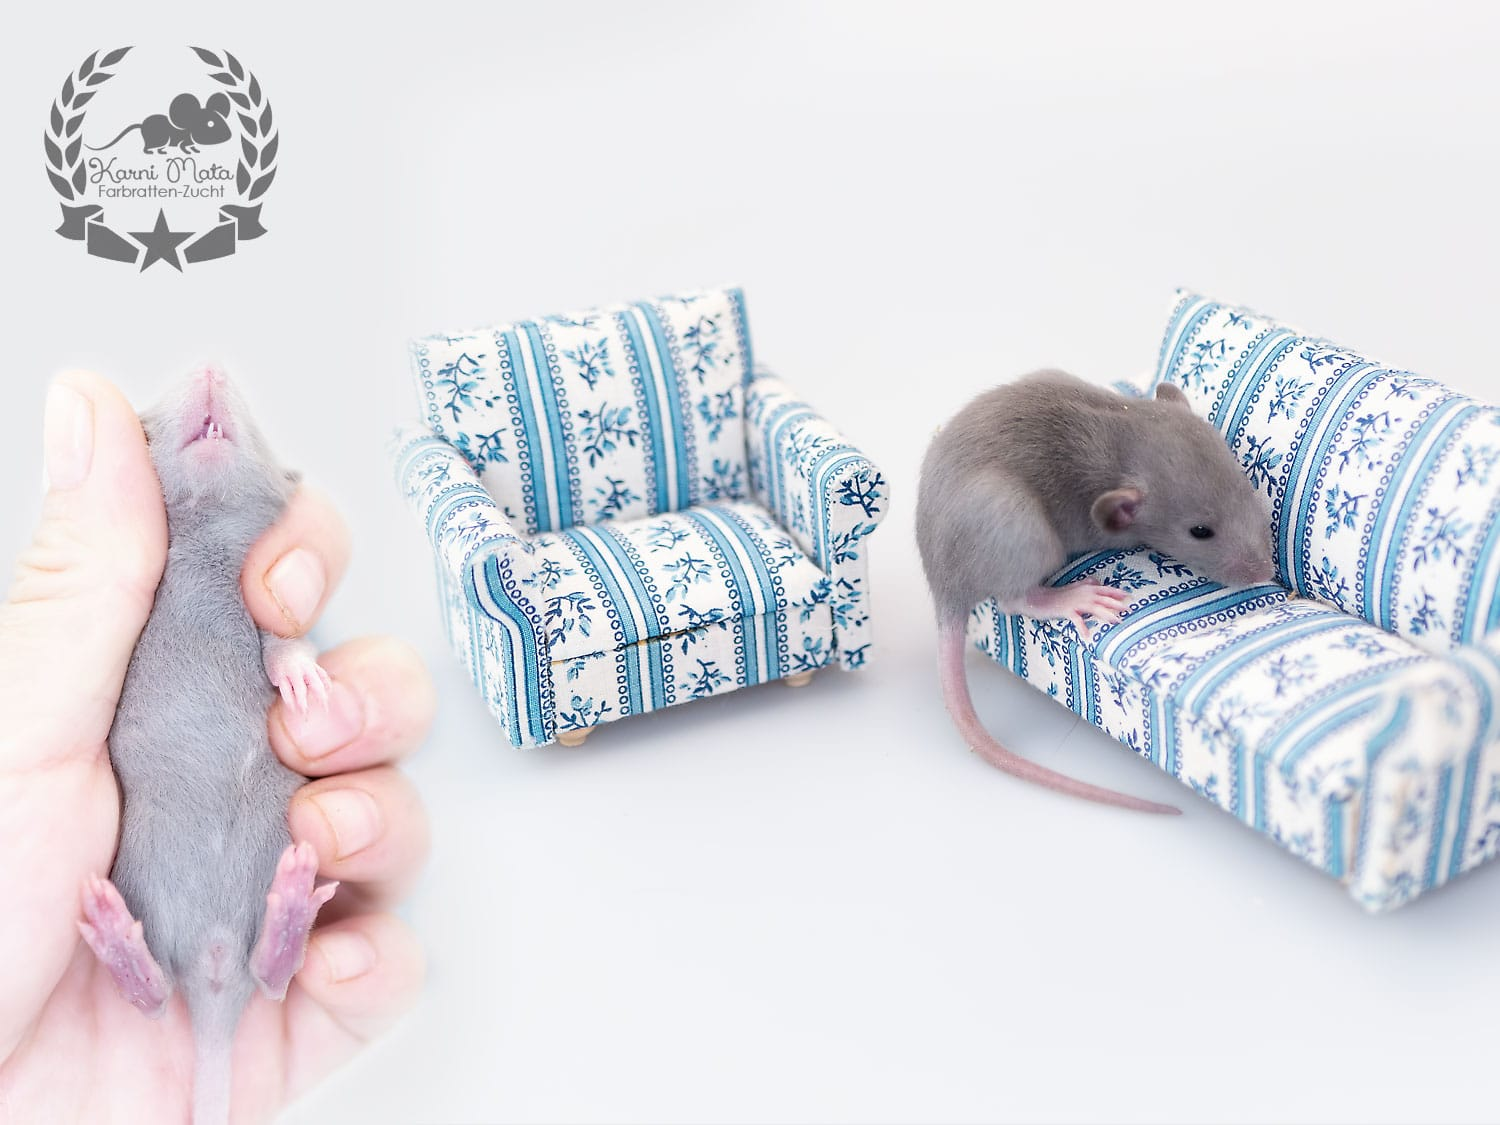 Ifirn KM K4 f 02, Farbratten (Fancyrat) Russian Blue American Irish Silvermane Dumbo